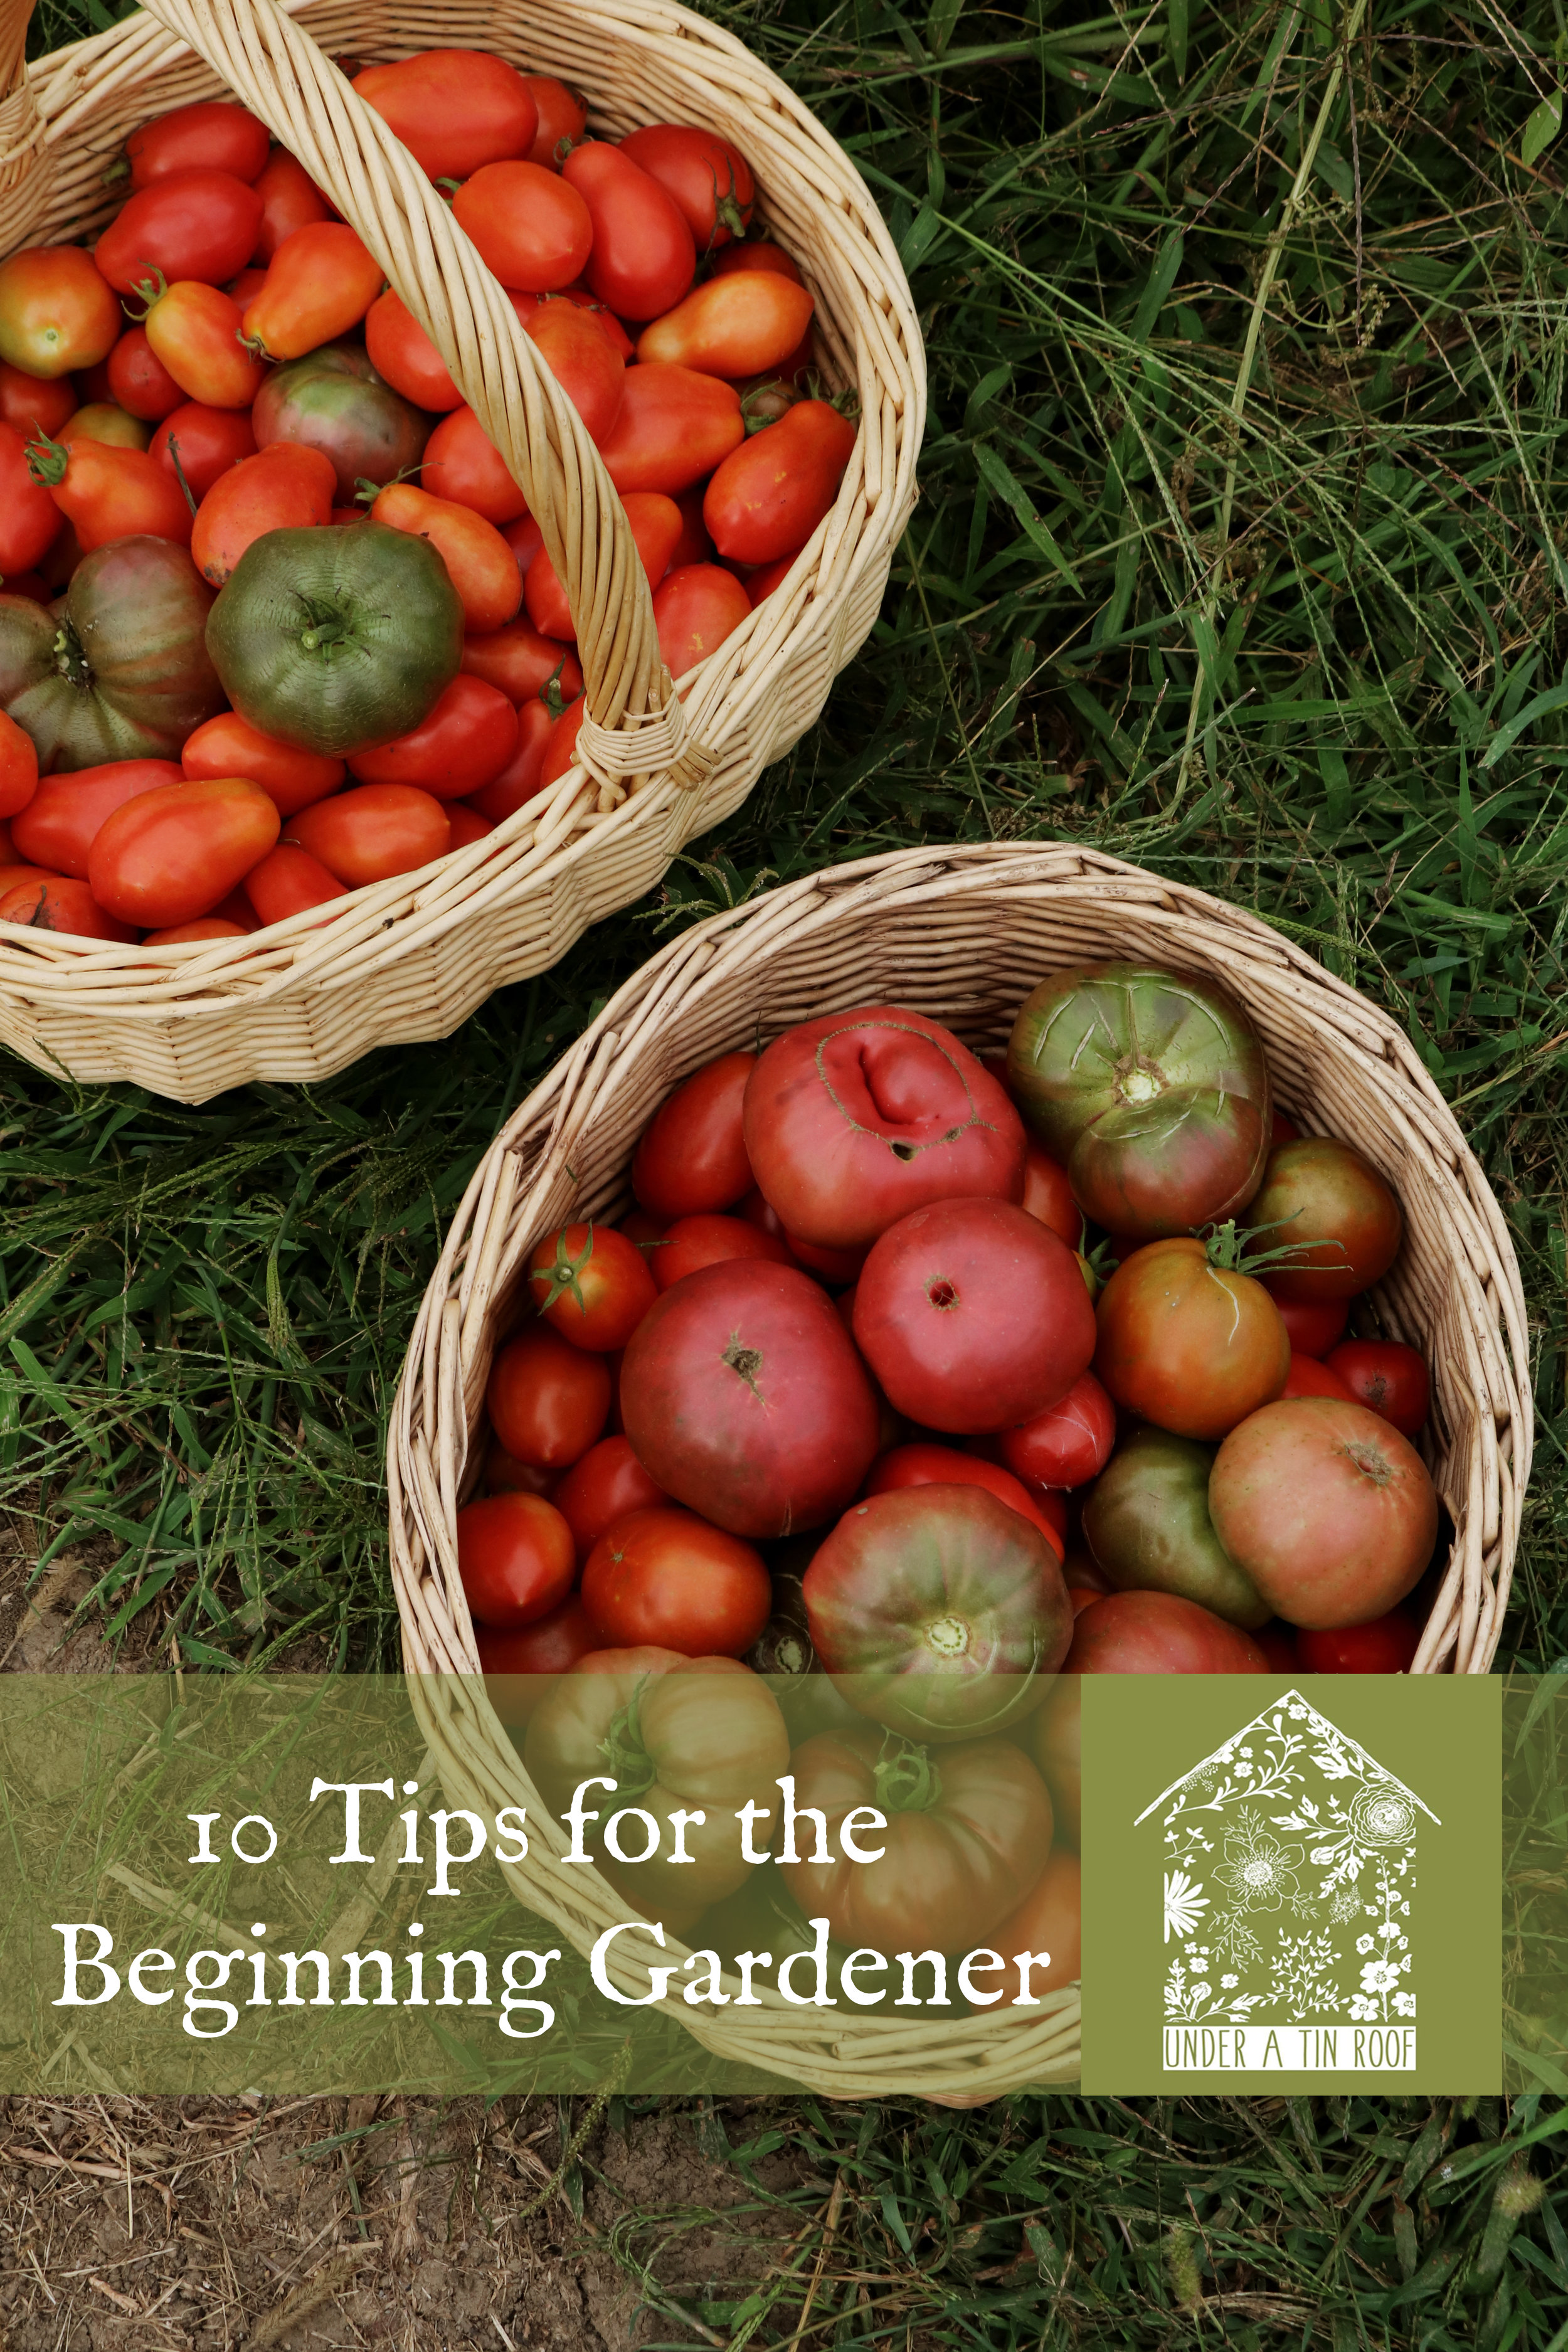 10 Tips for the Beginning Gardener - Under A Tin Roof Blog